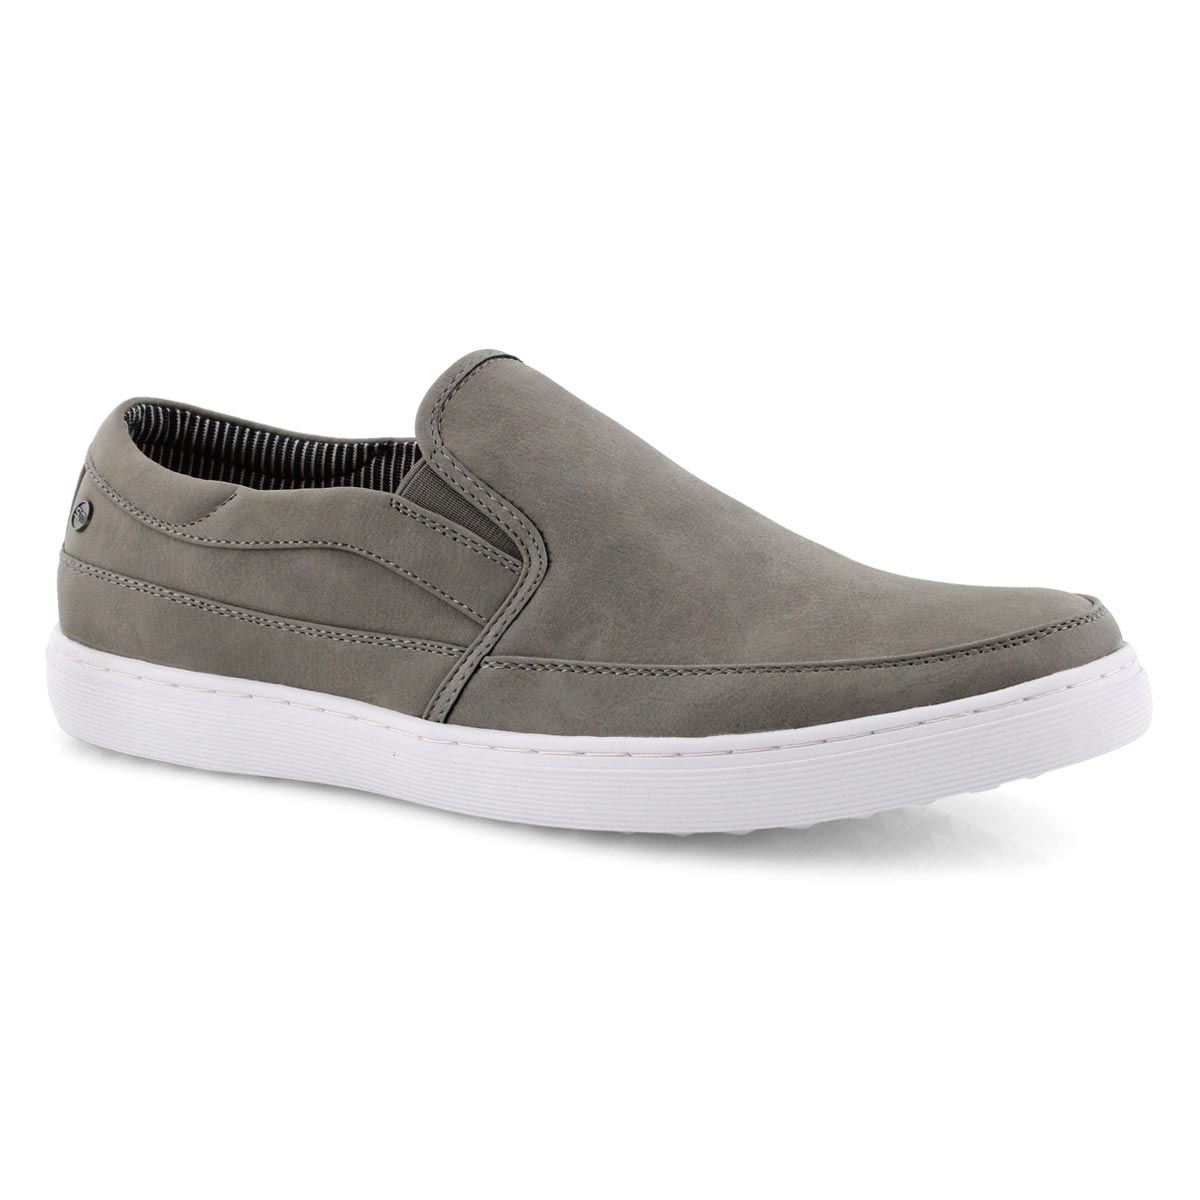 Mns Grissom grey slip on casual loafer